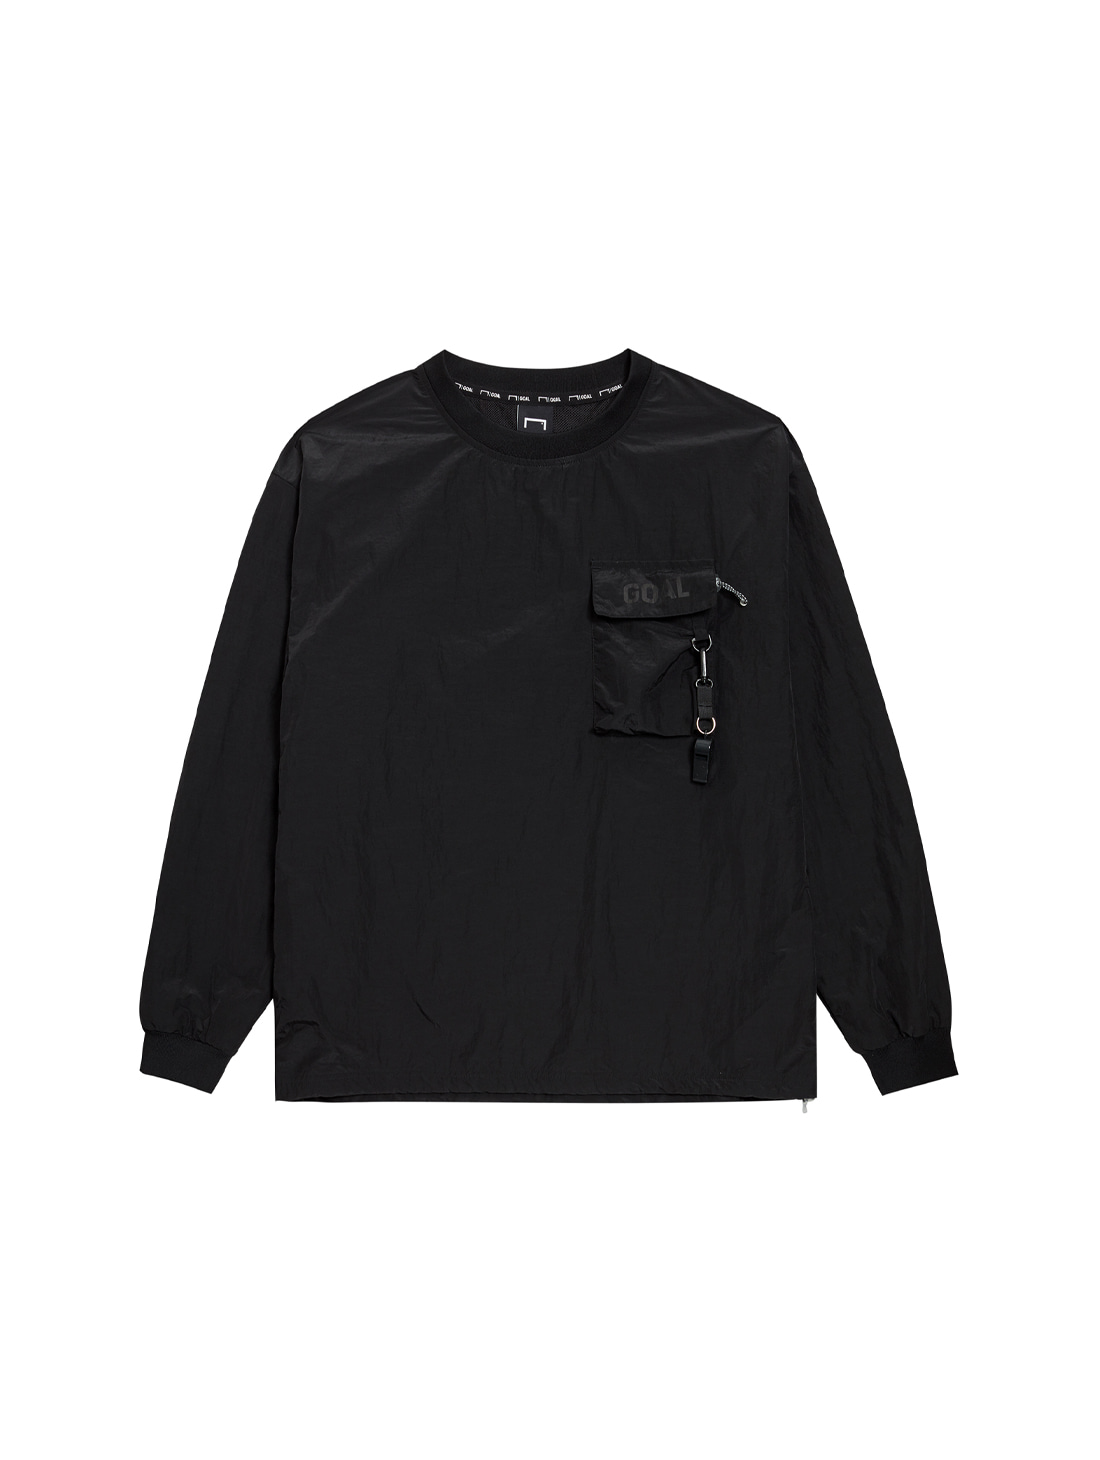 NYLON METAL POCKET LONG SLEEVE TEE - BLACK